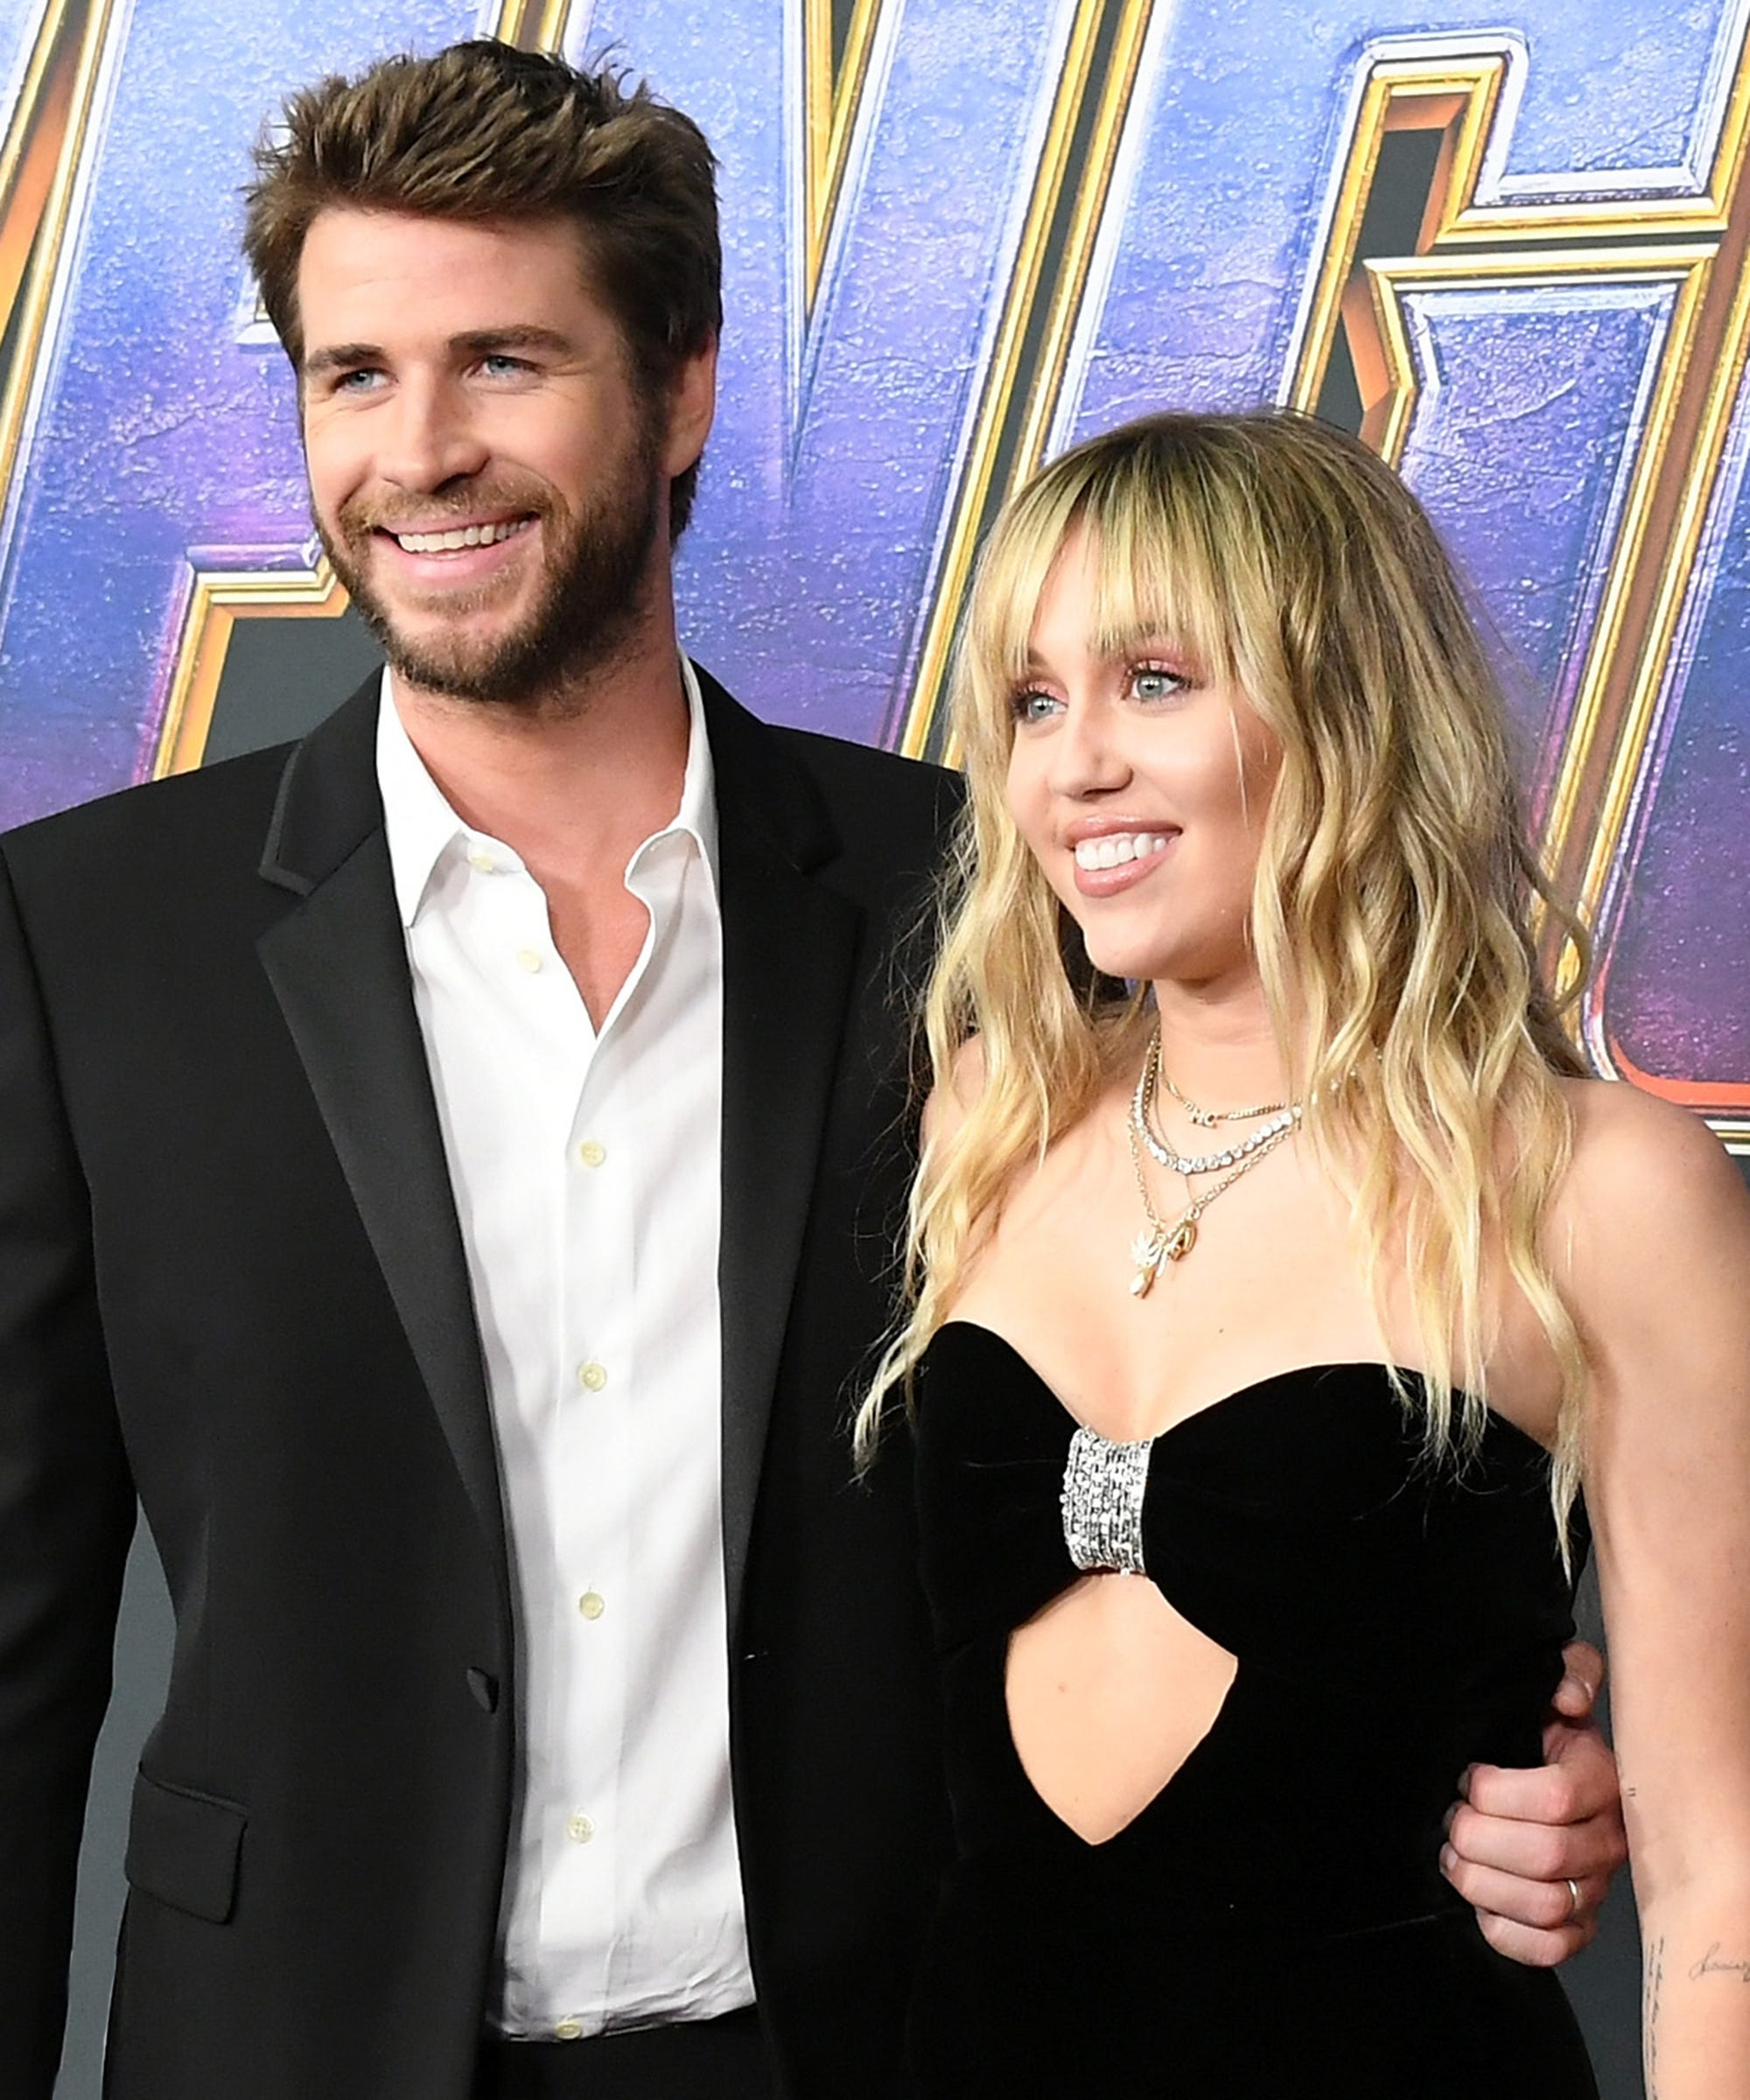 Miley Cyrus And Liam Hemsworth Wore Matching Saint Laurent At The Avengers: Endgame Premiere